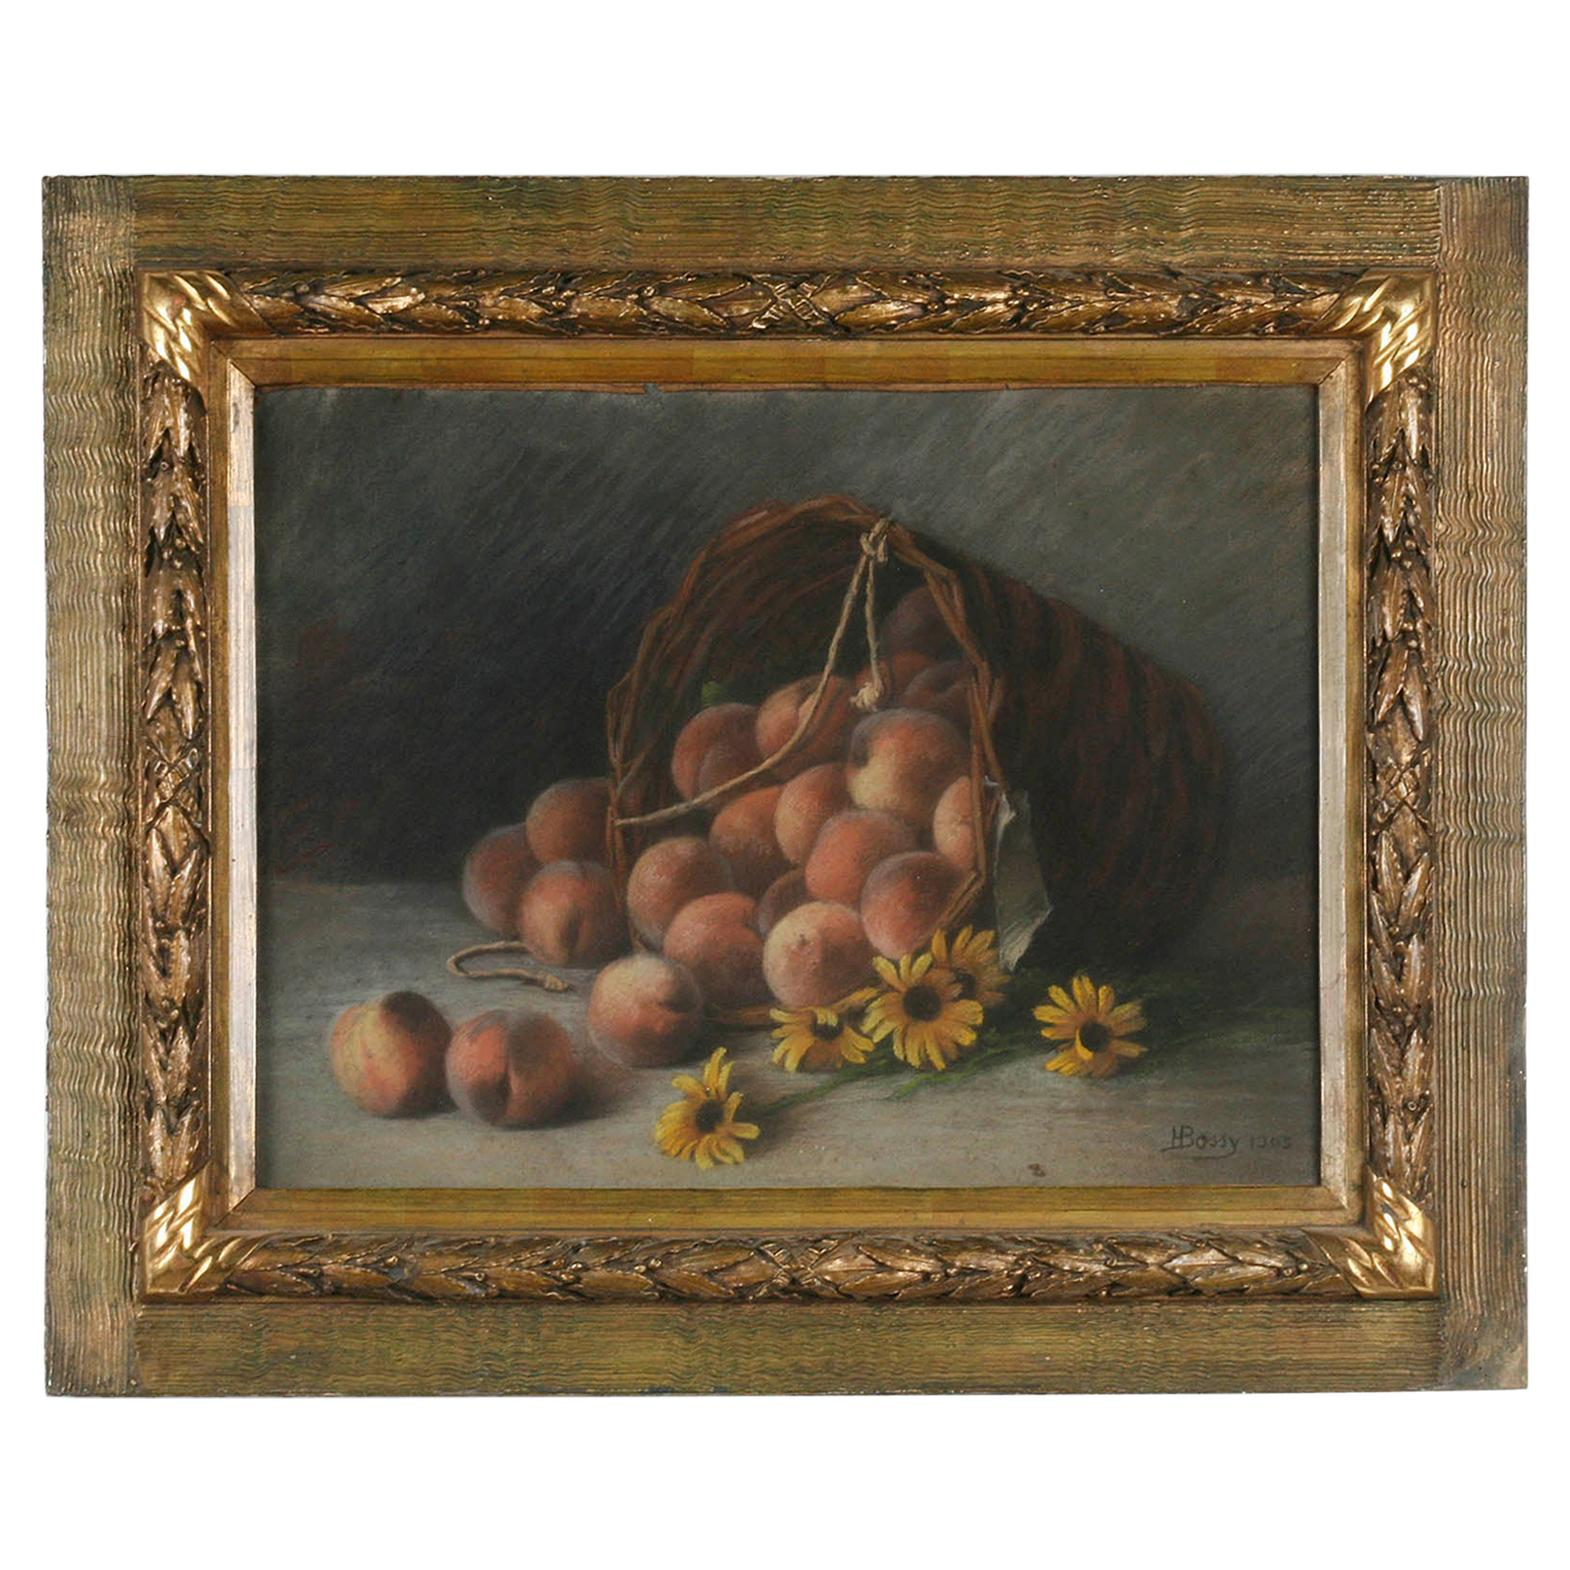 Early 20th Century French Painting Pastel-Color on Paper by H. Bossy, 1905